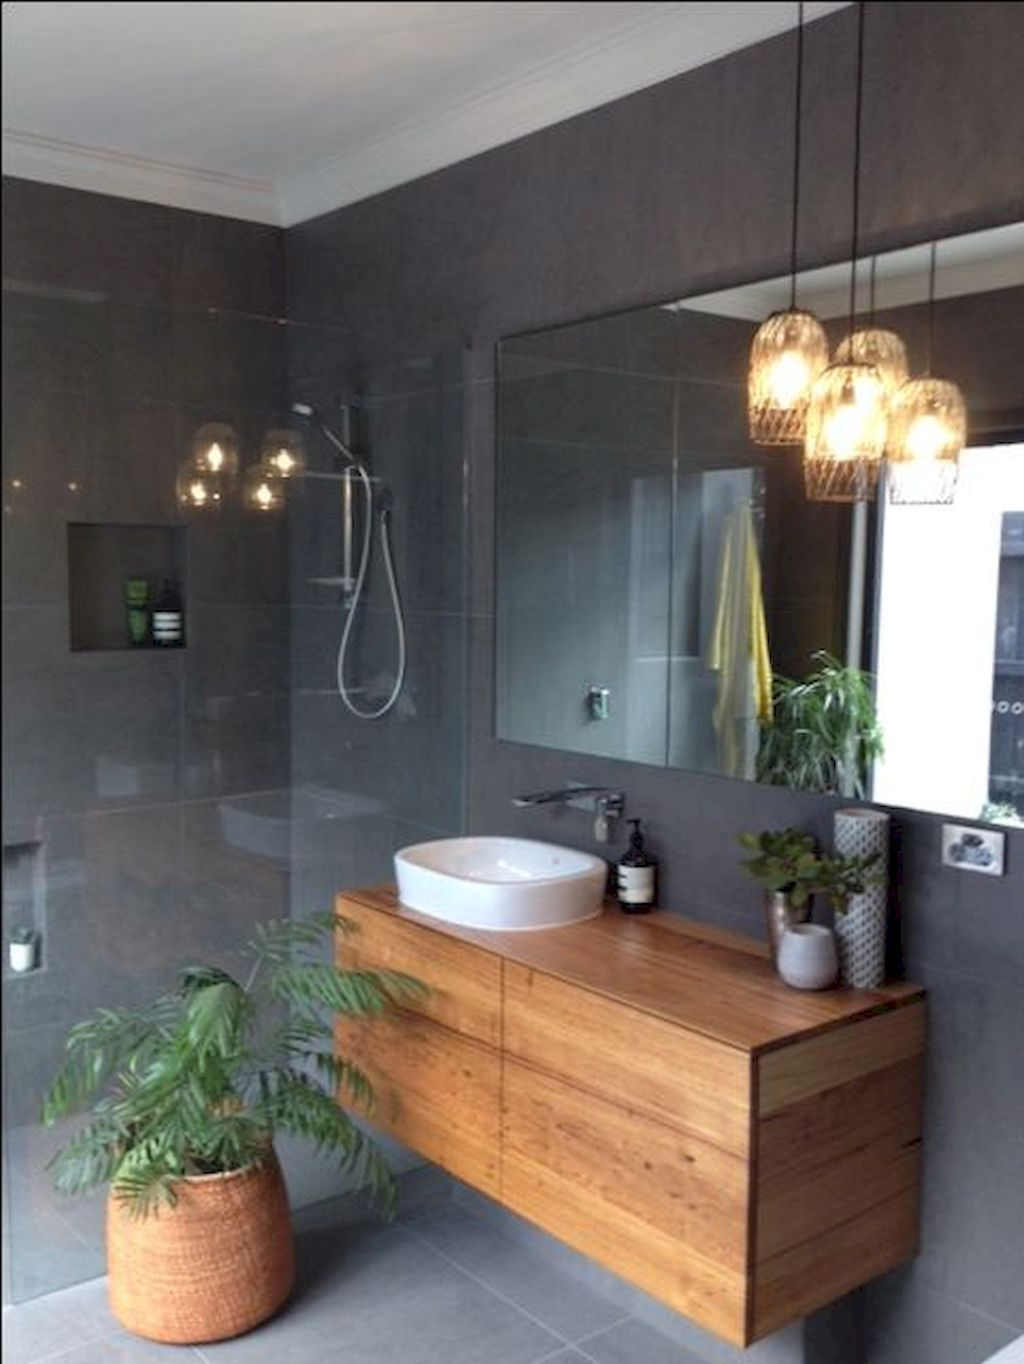 pinterest bathroom ideas fresh and cool small bathroom remodel and decor ideas 24 14558